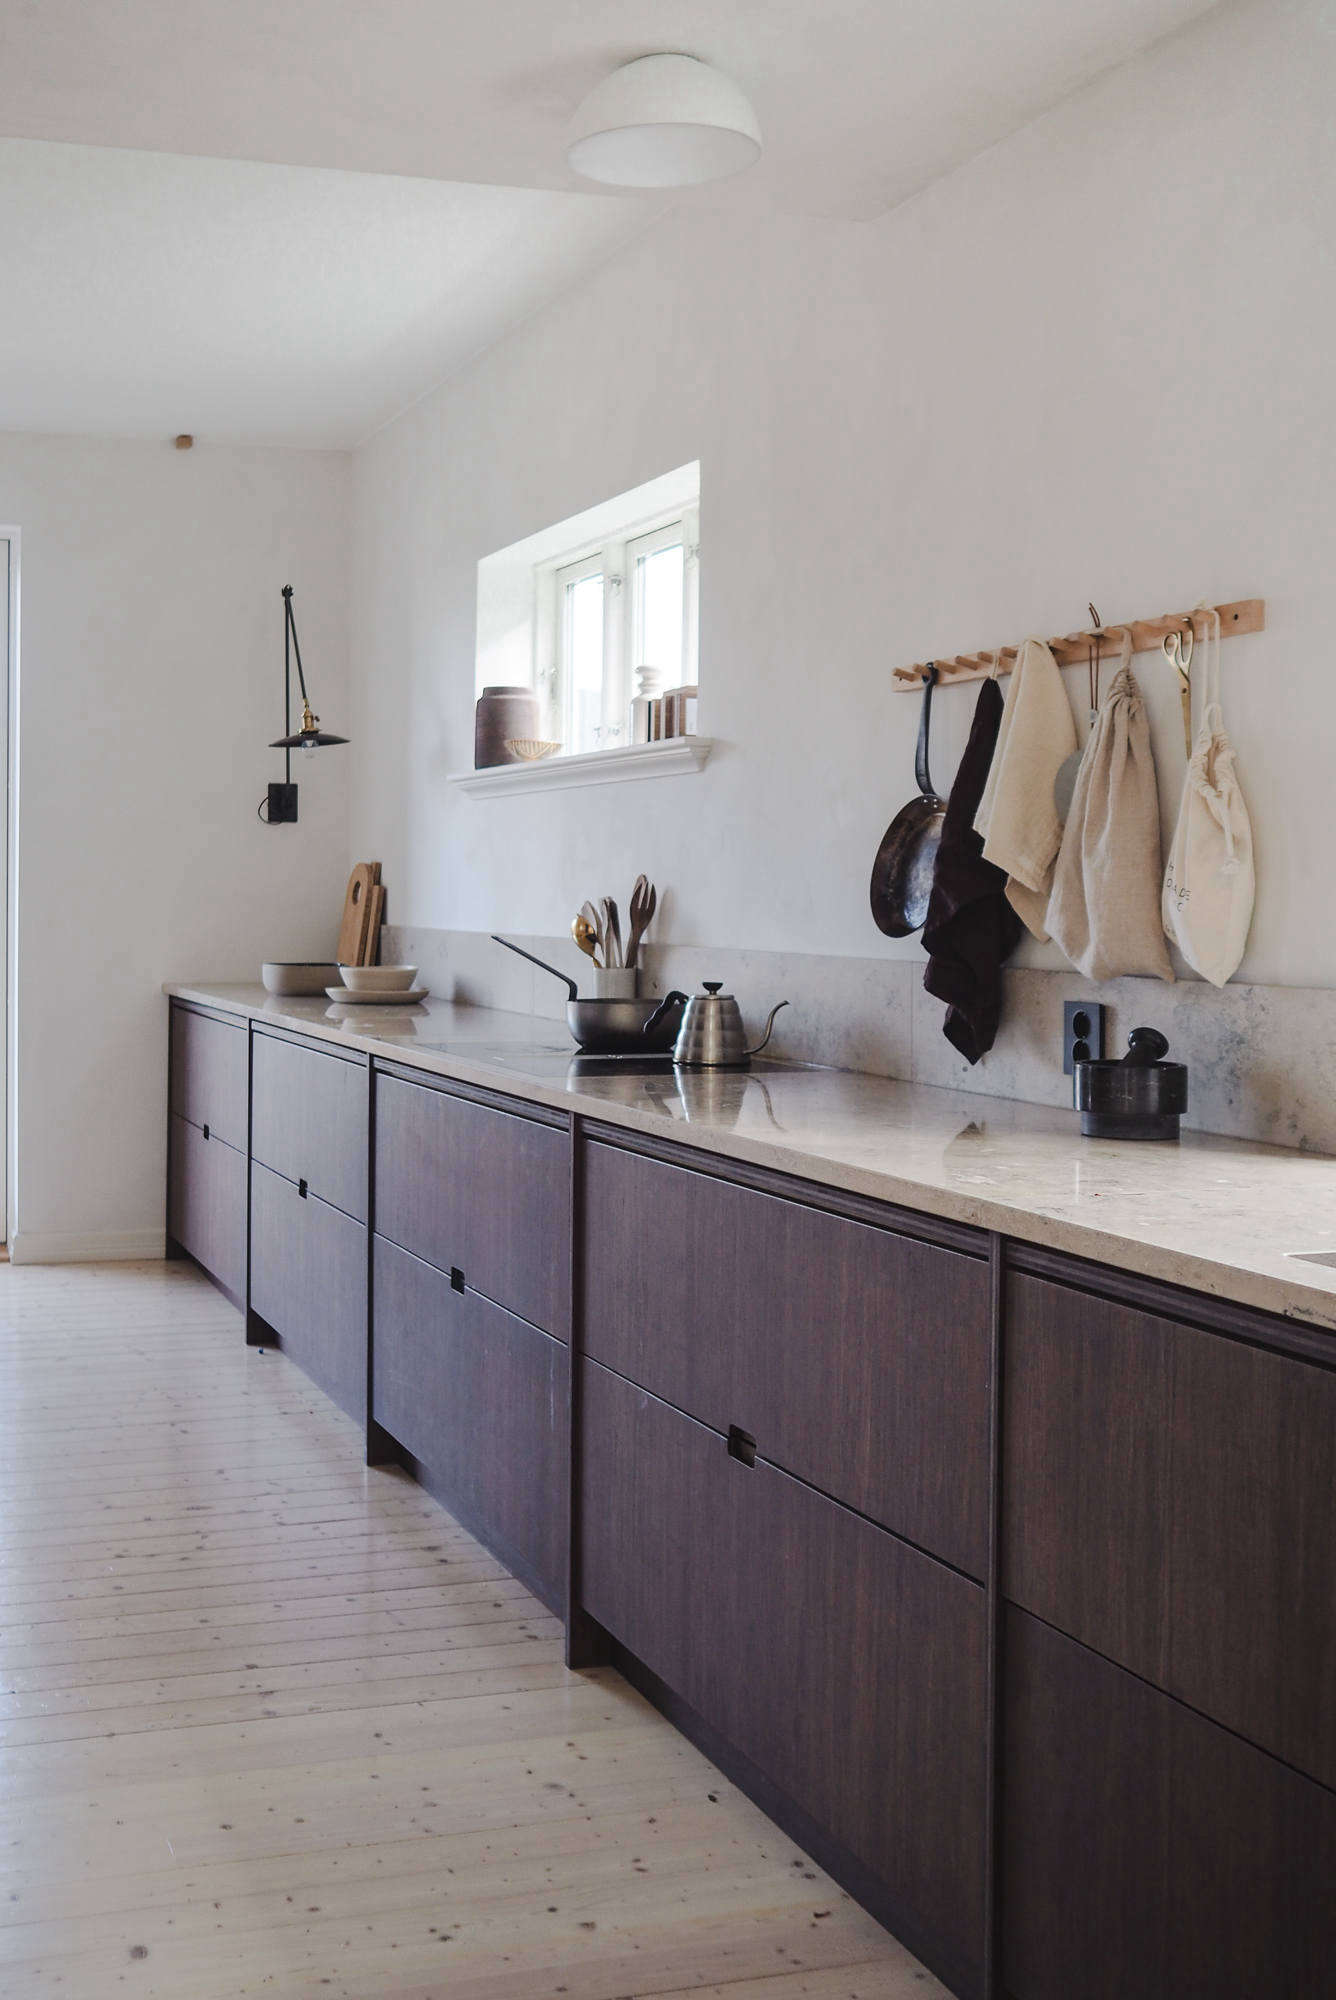 The All Bamboo Kitchen Ask Og Eng S Sustainable Kitchen Design